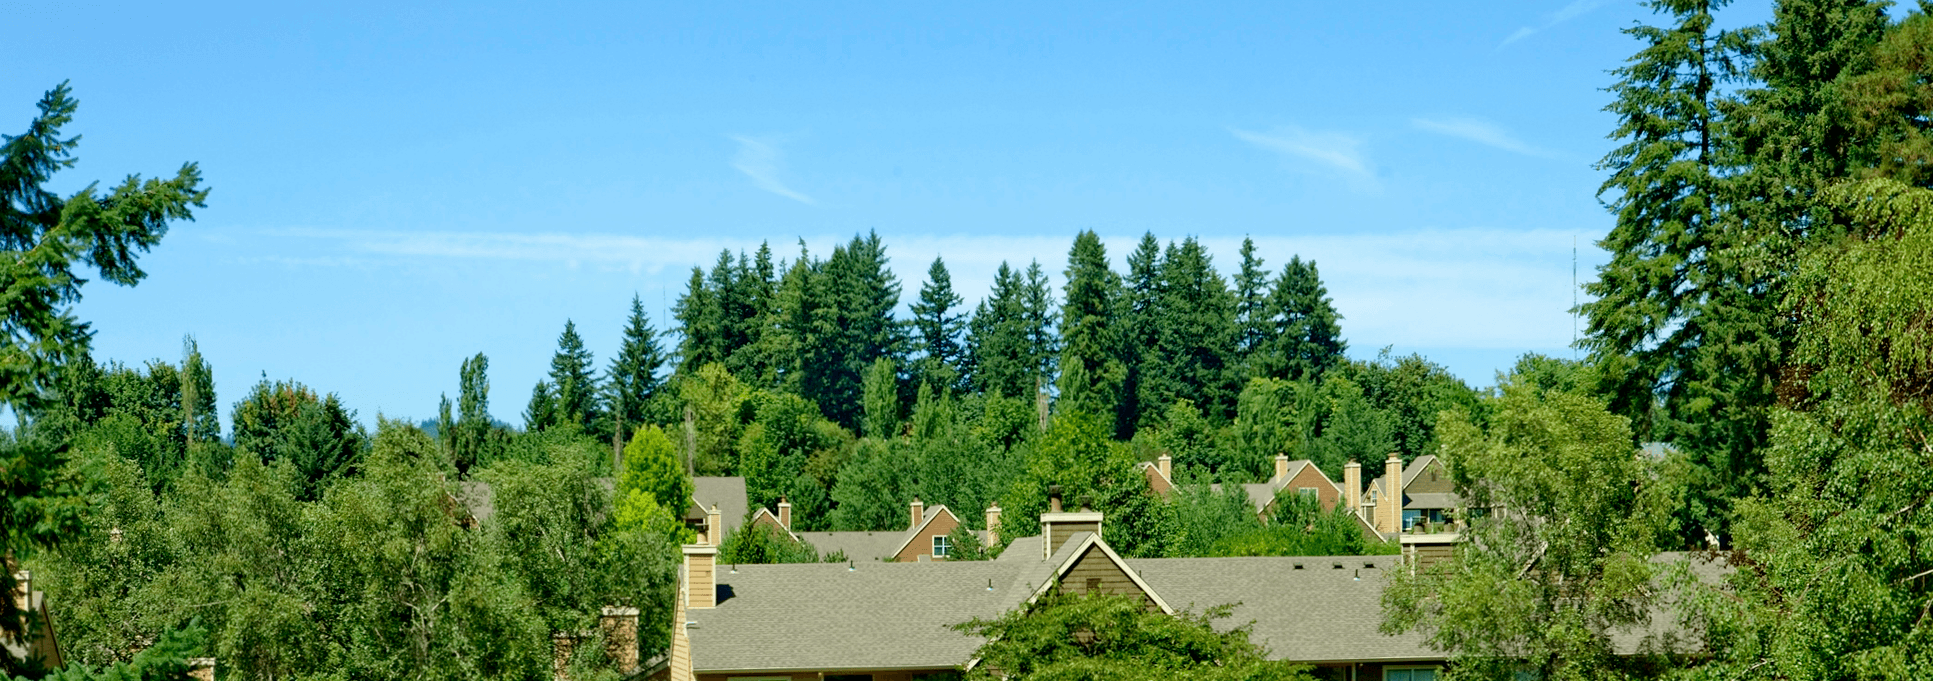 The Frank Estates apartments in Portland, Oregon